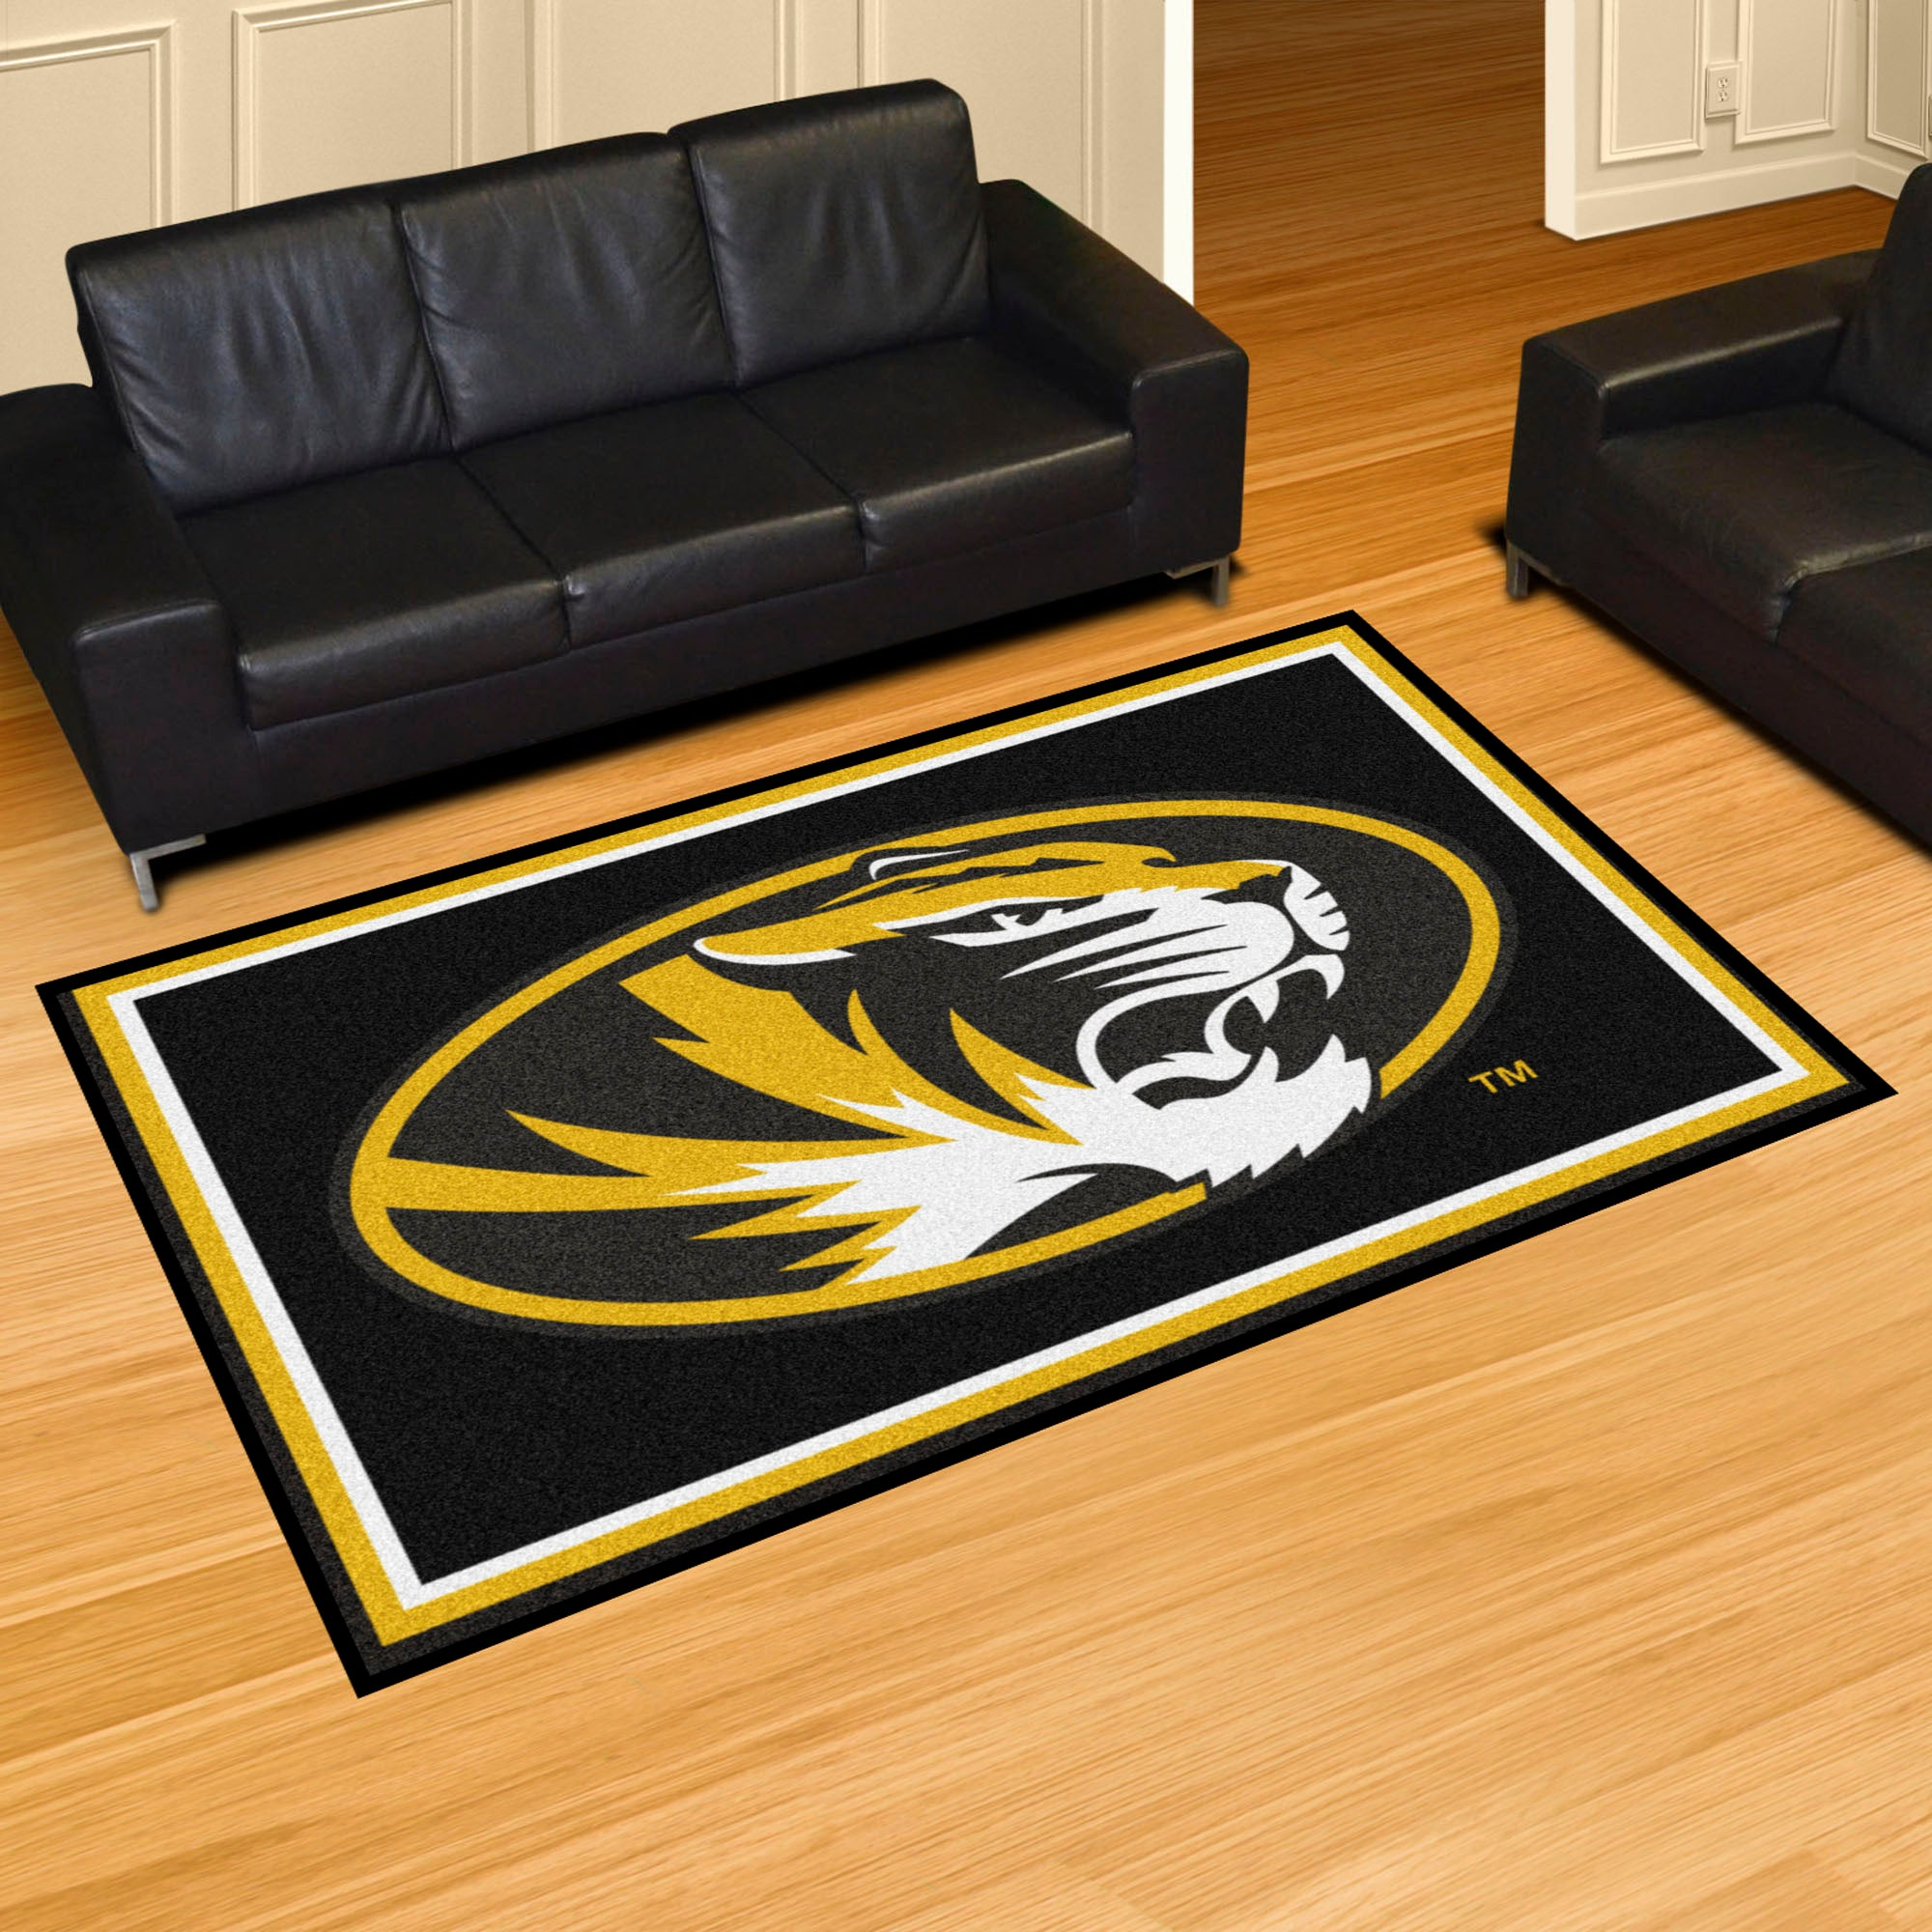 University of Missouri State Plush Rug  College Area Rug - Fan Rugs